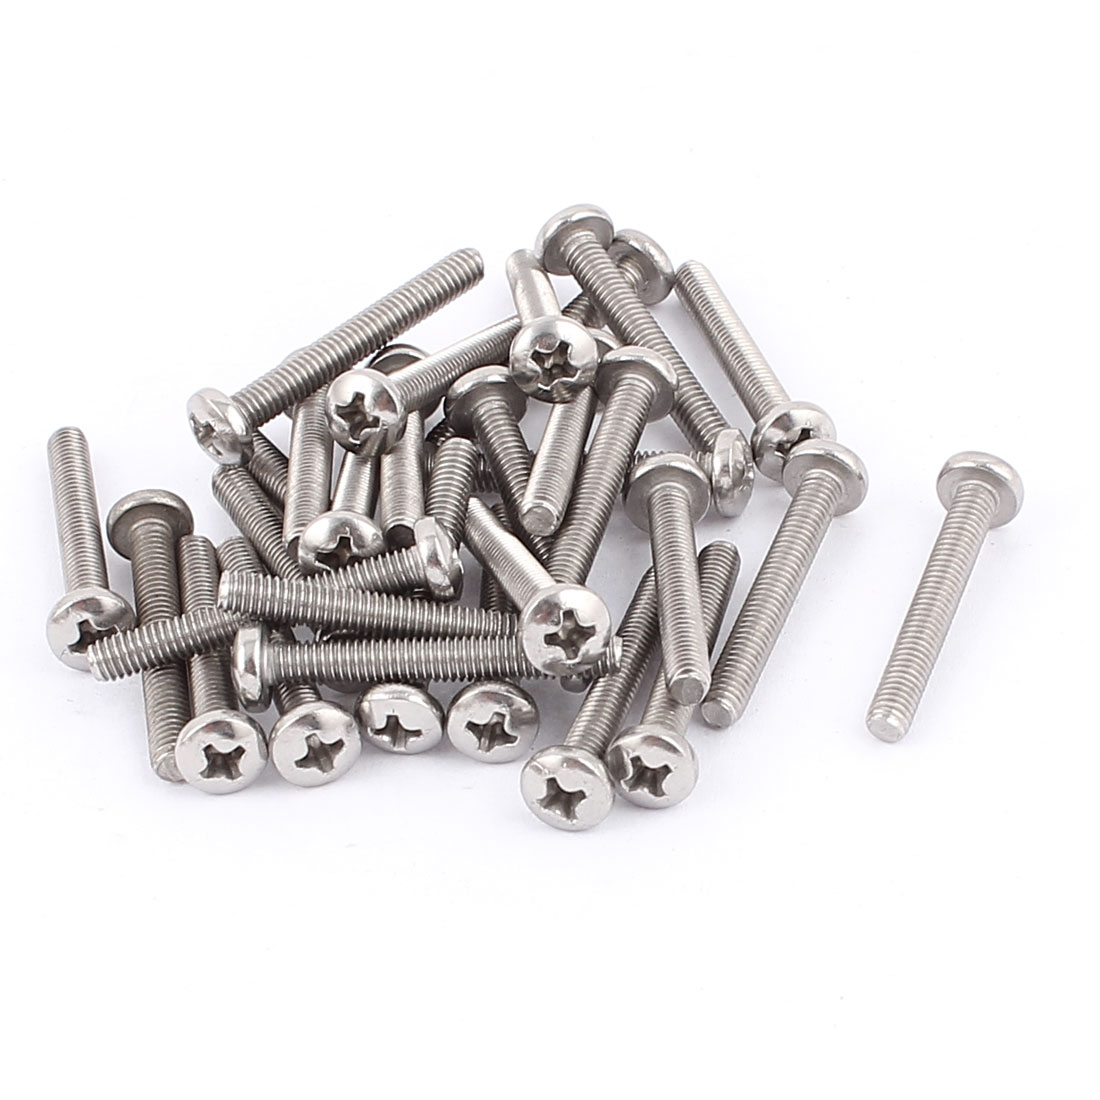 M4x30mm Thread 304 Stainless Steel Cross Head Phillips Screw Bolt 30pcs